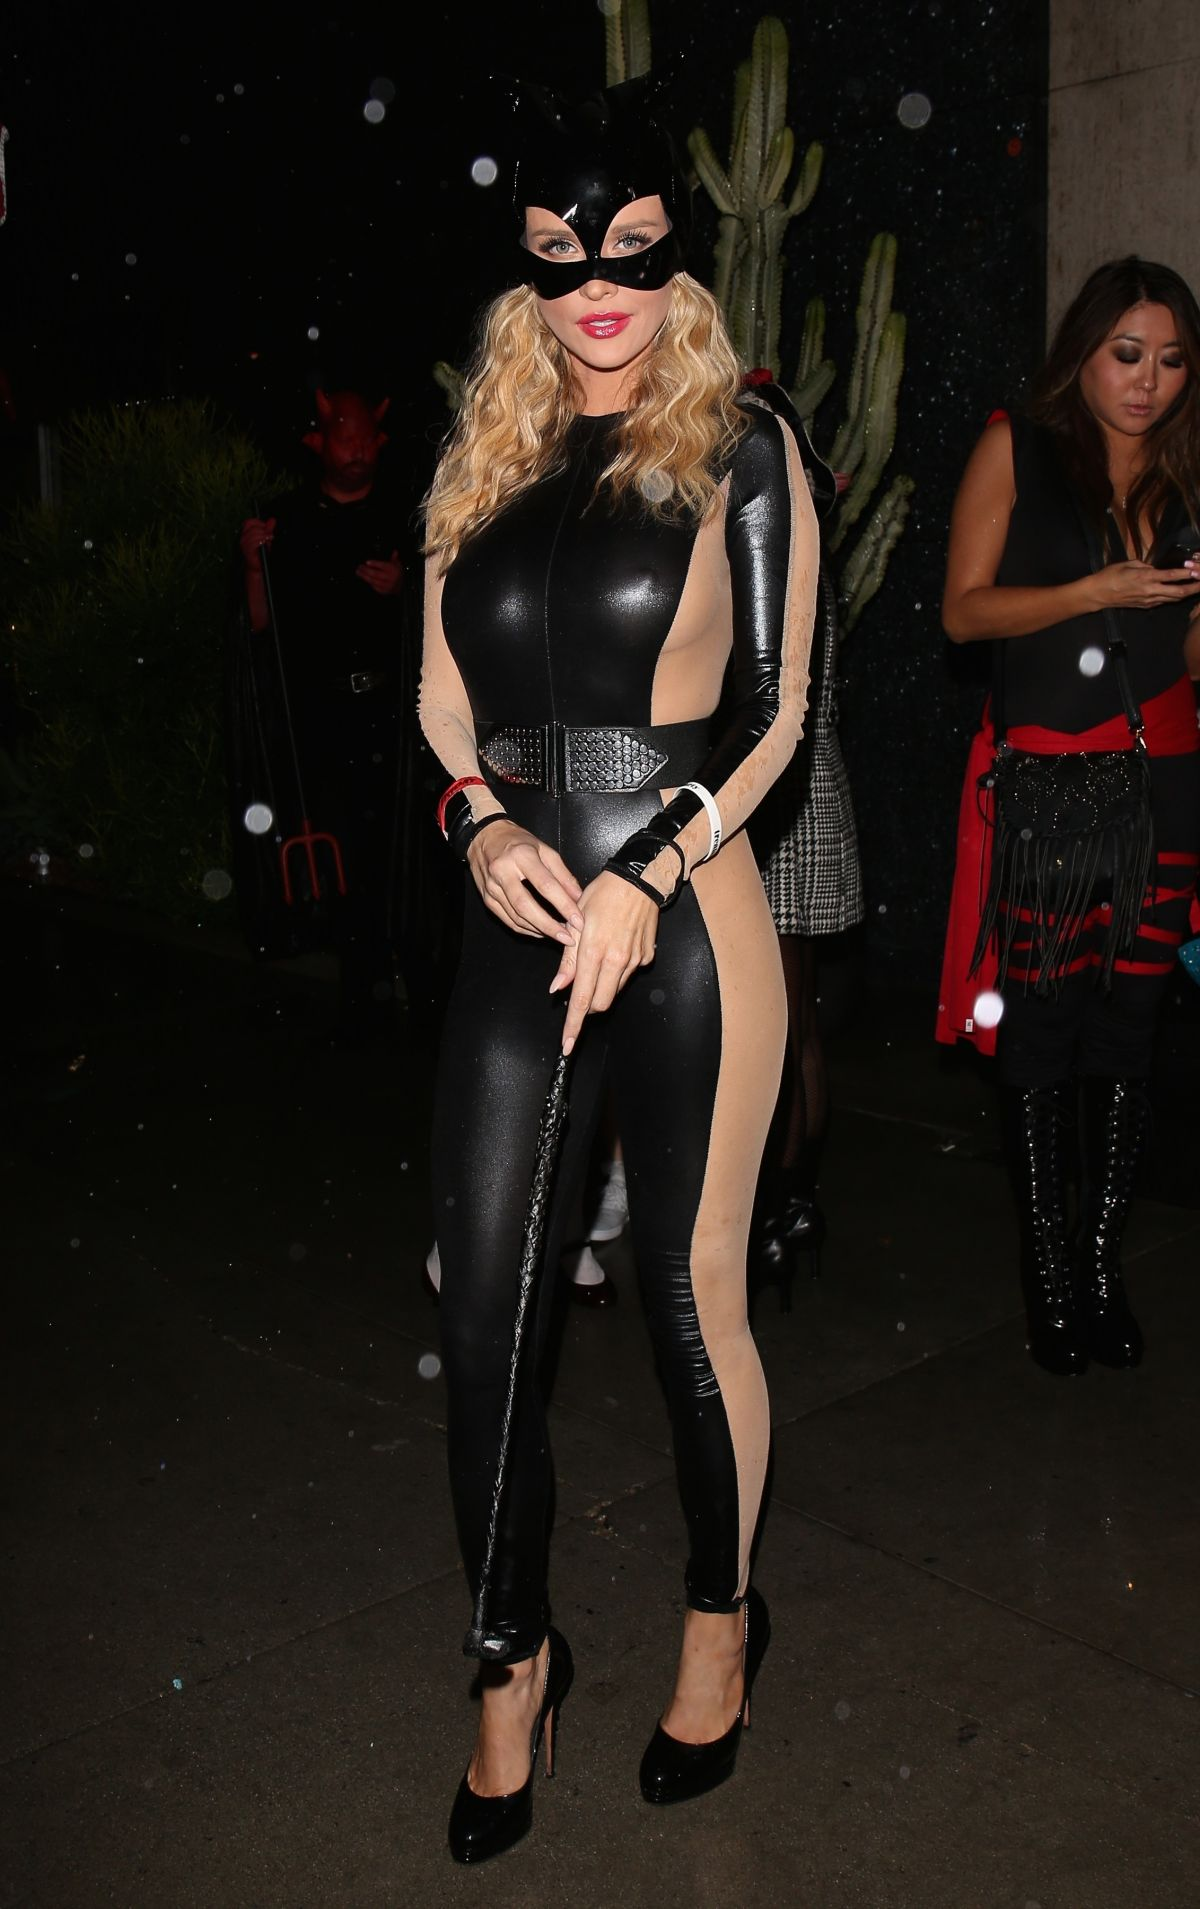 JOANNA KRUPA at a Halloween Party in West Hollywood - HawtCelebs ...